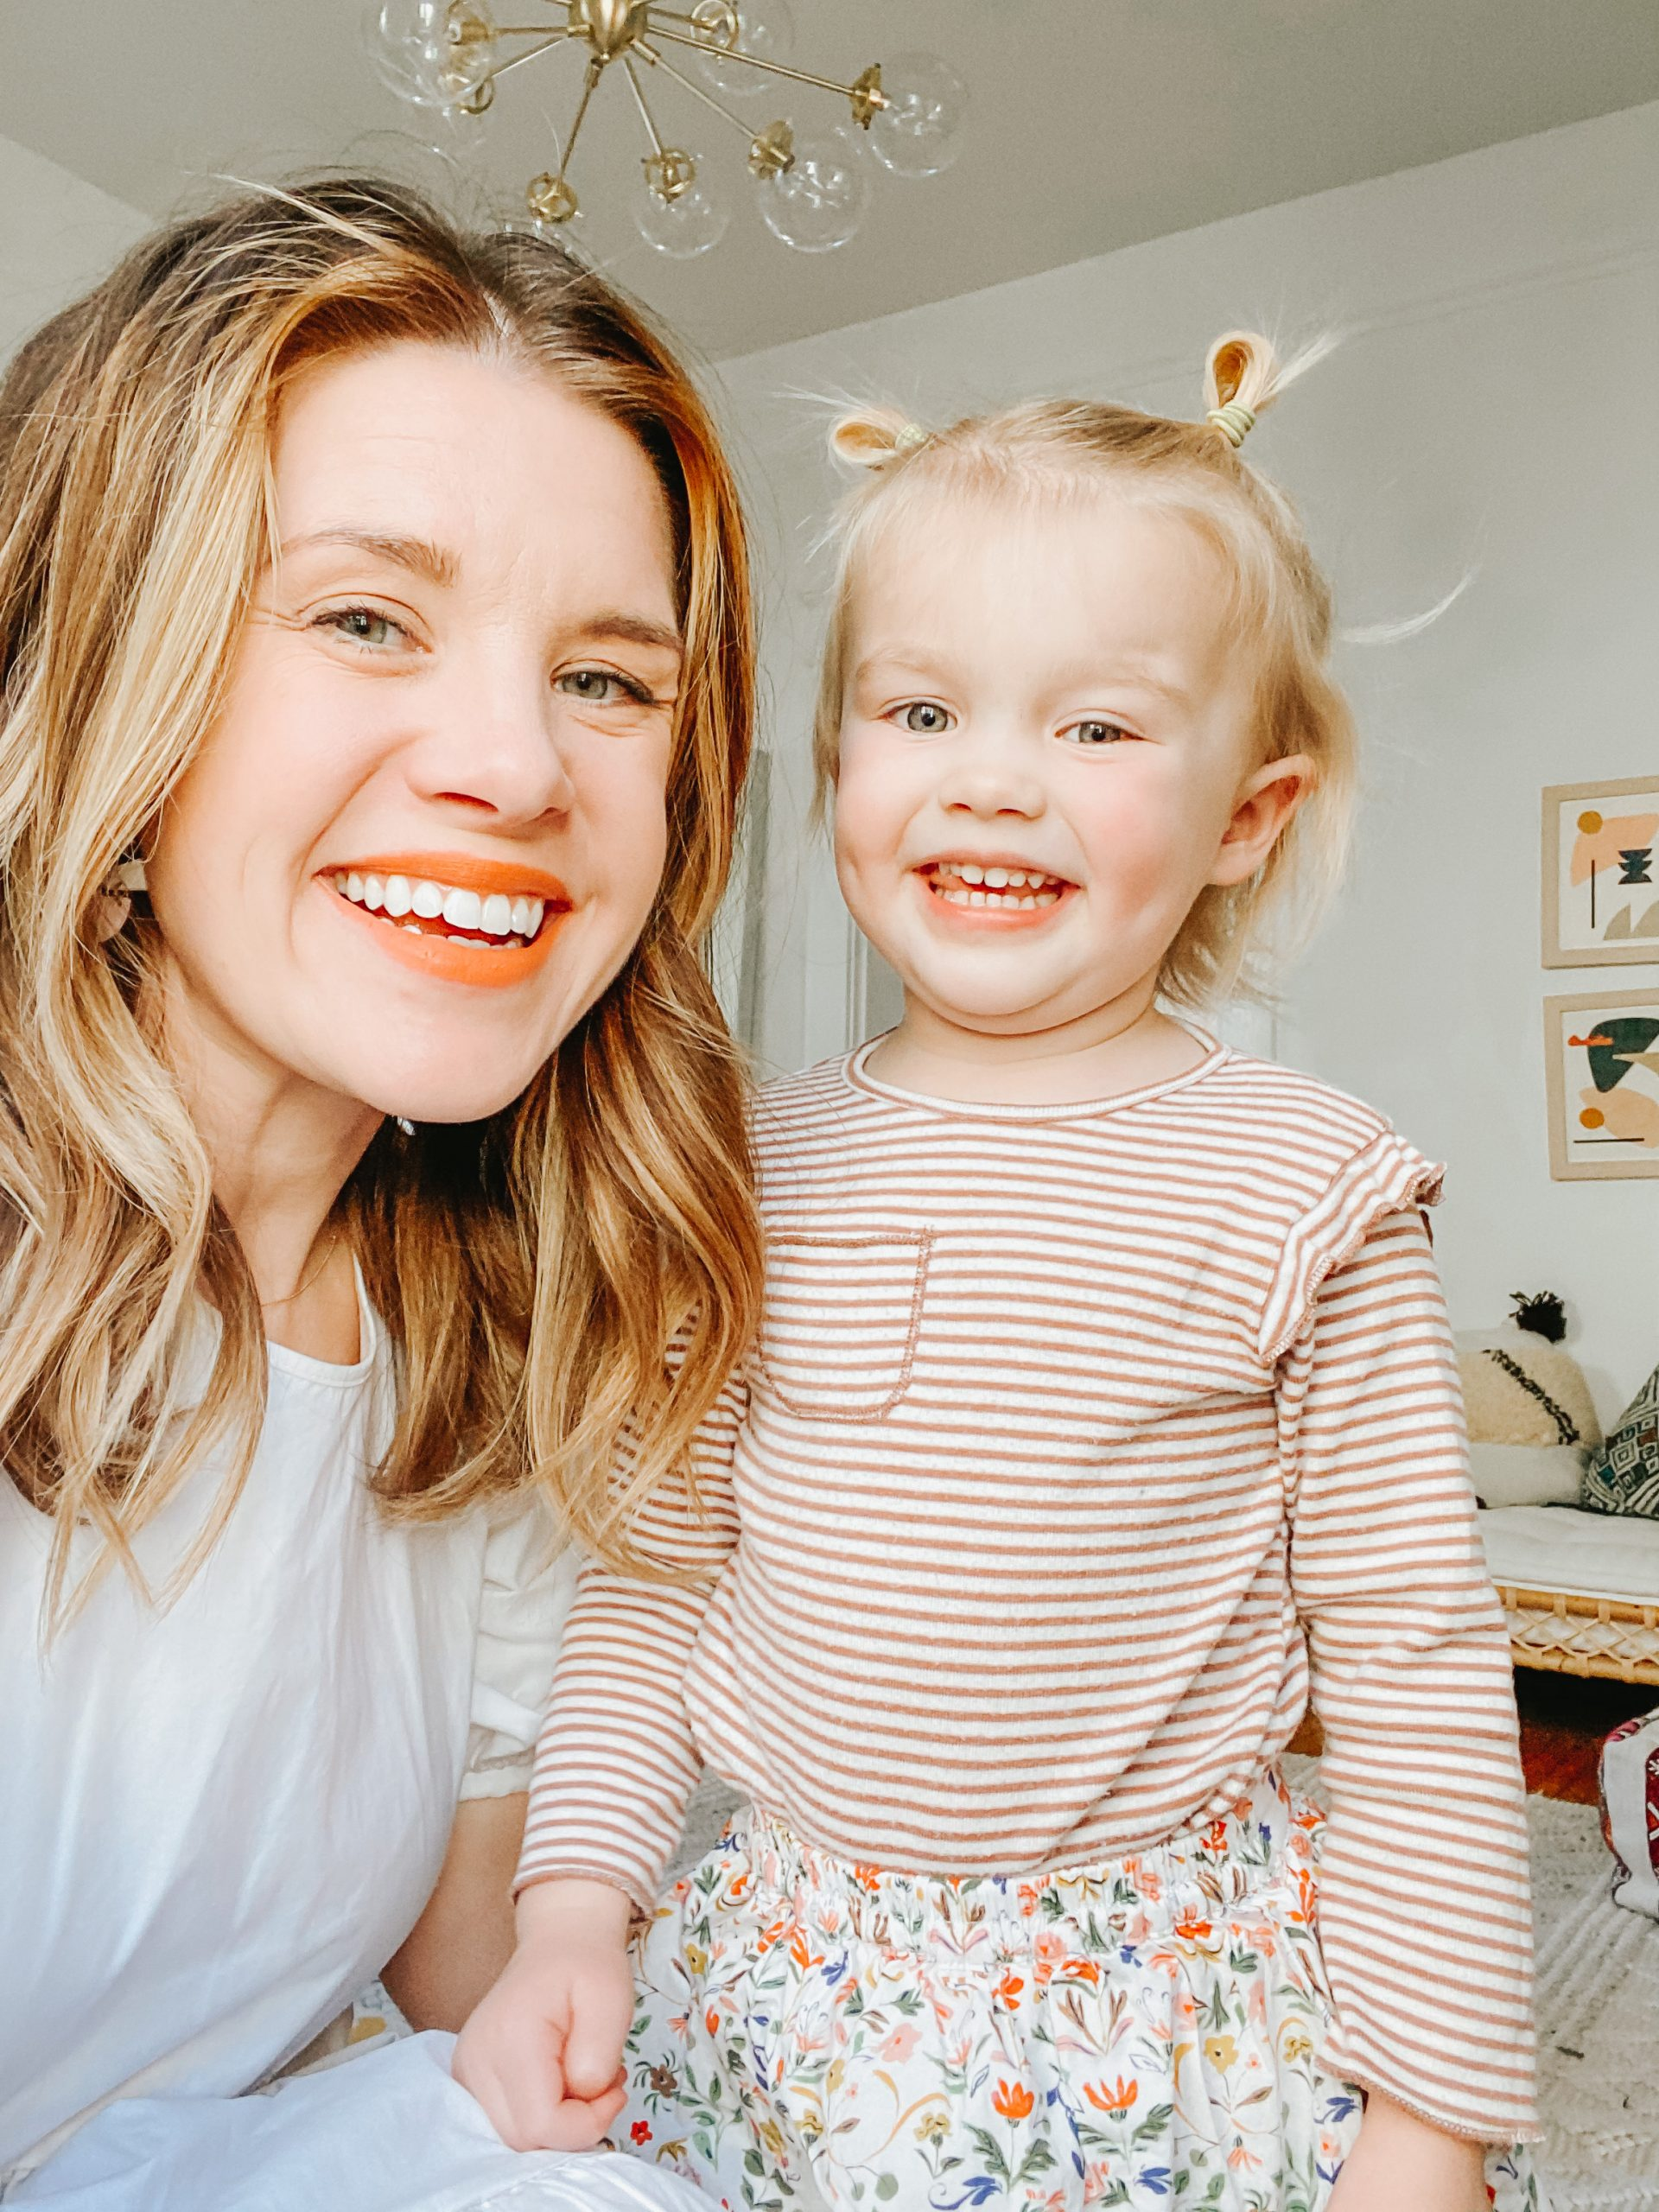 reflections: One-on-One Time with My Toddler